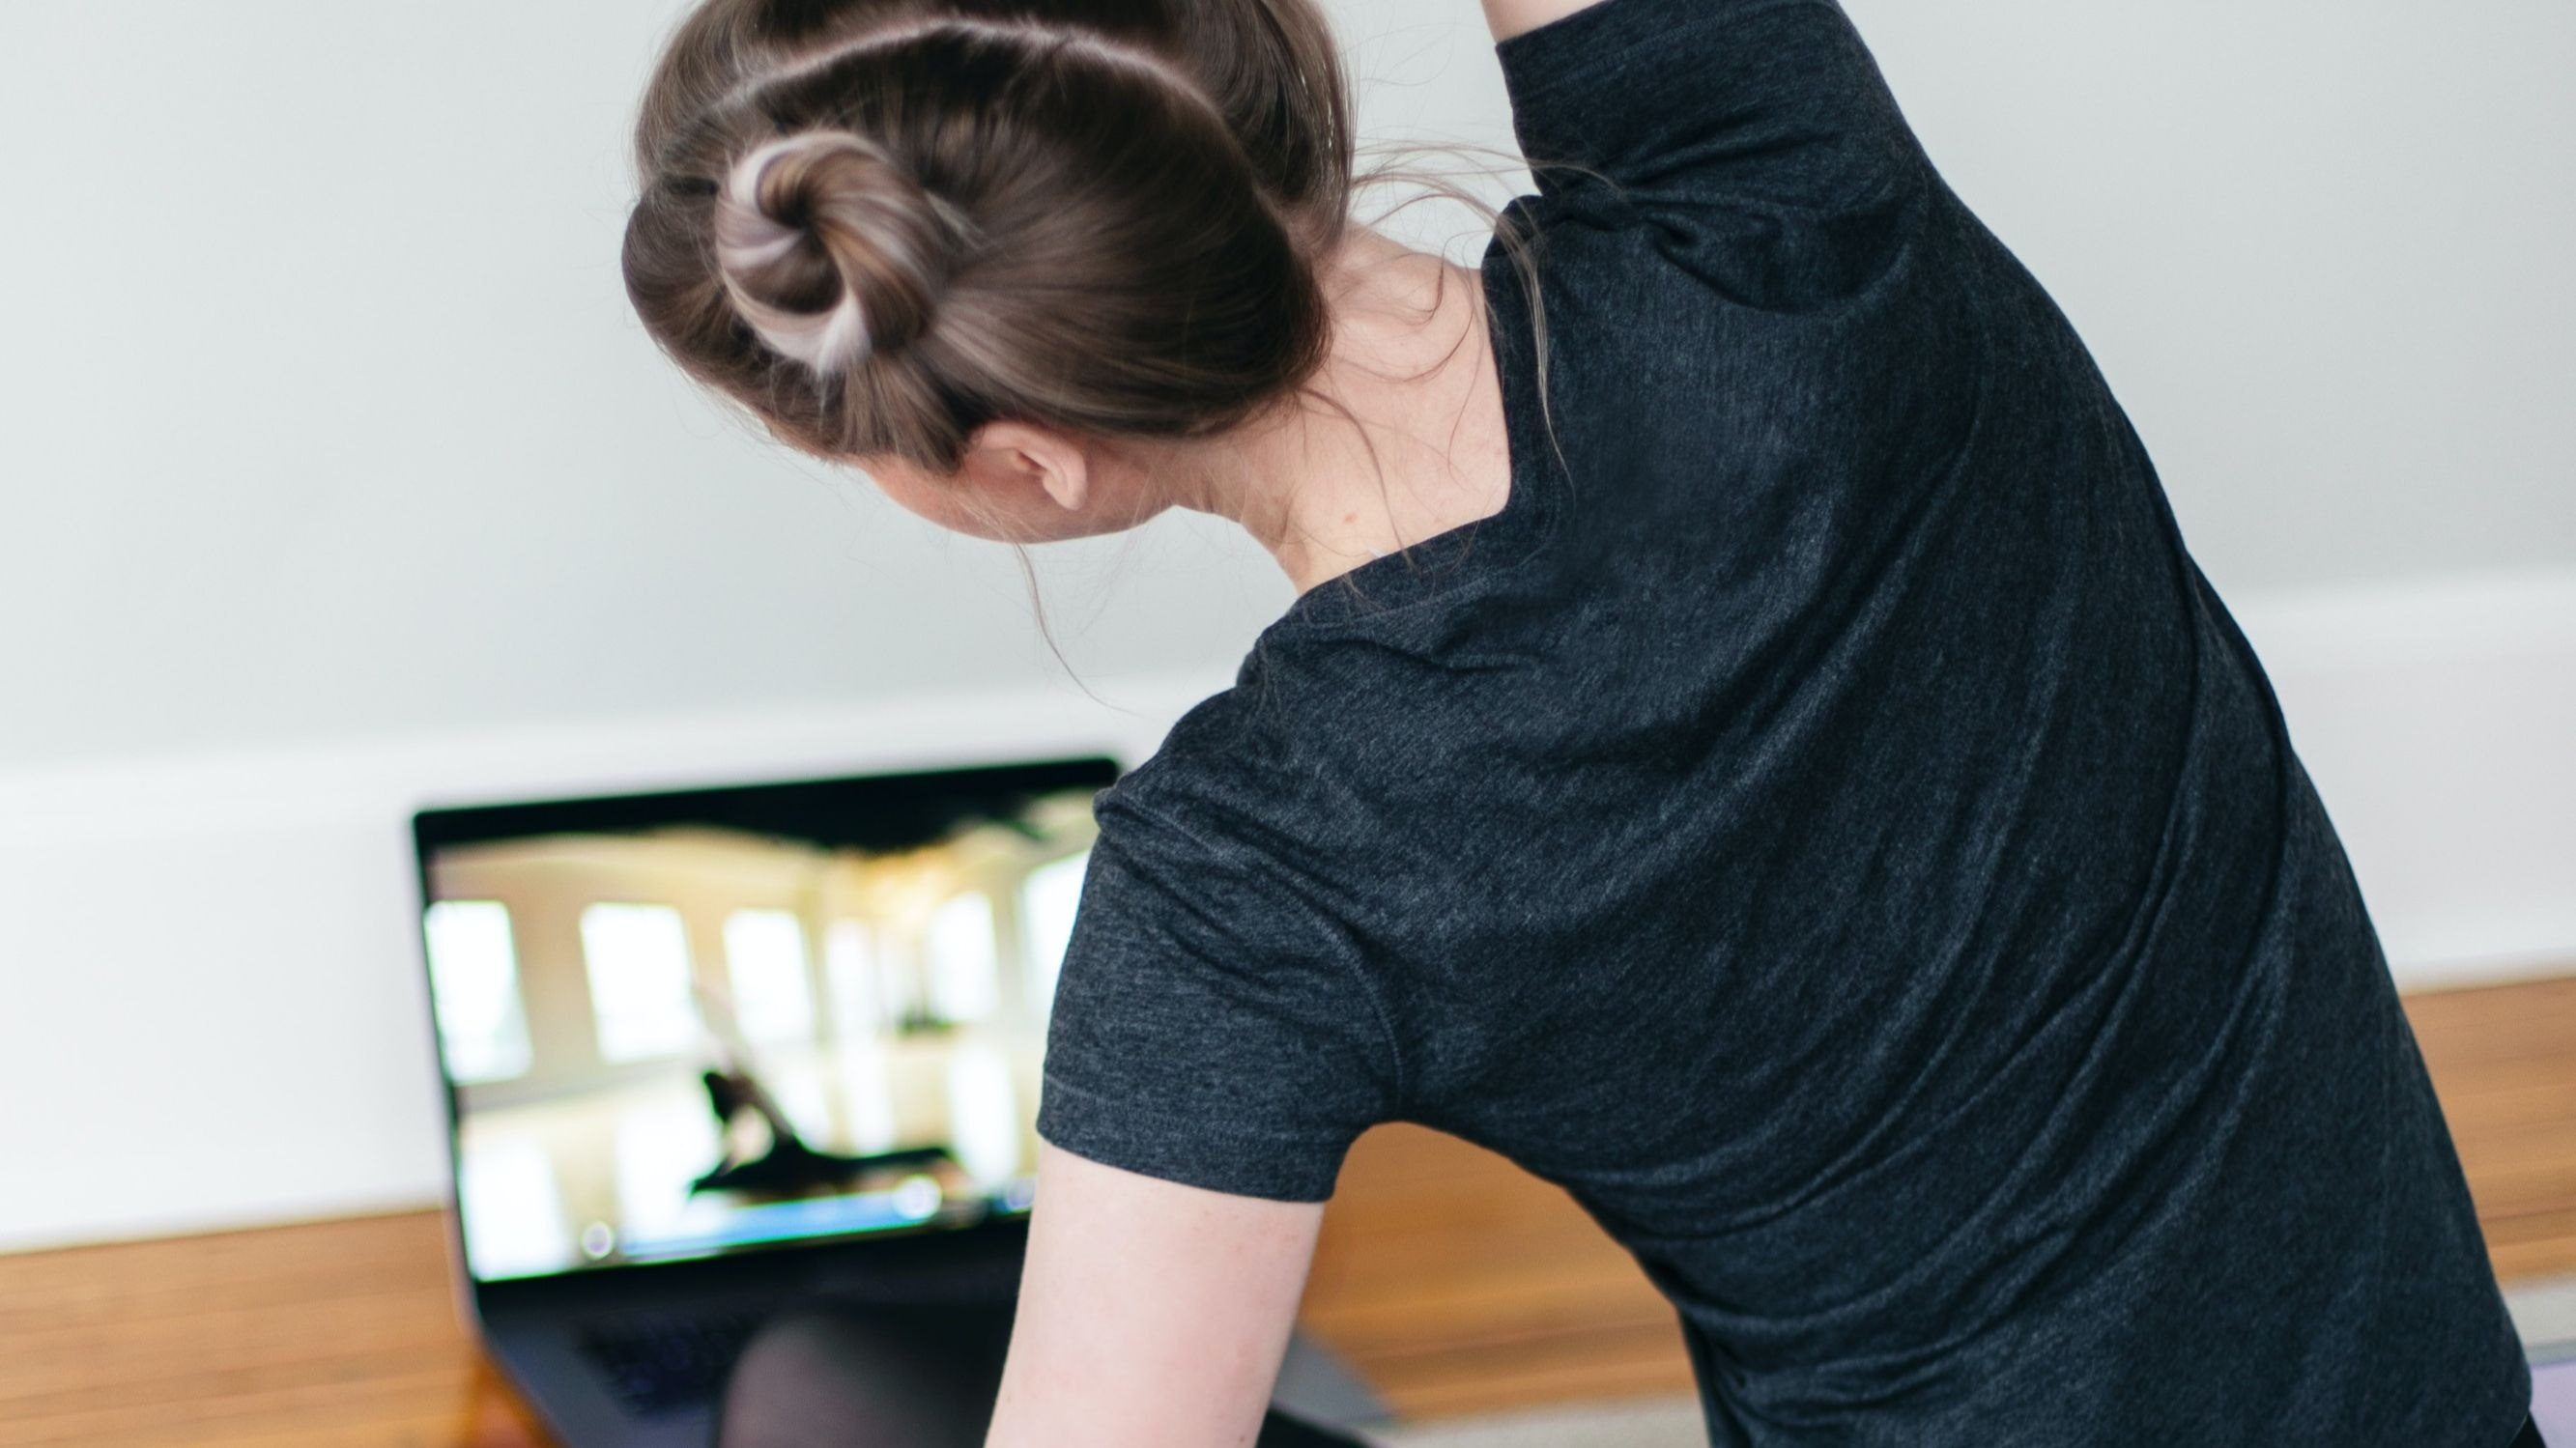 Our Guide to Online Personal Training Using Zoom